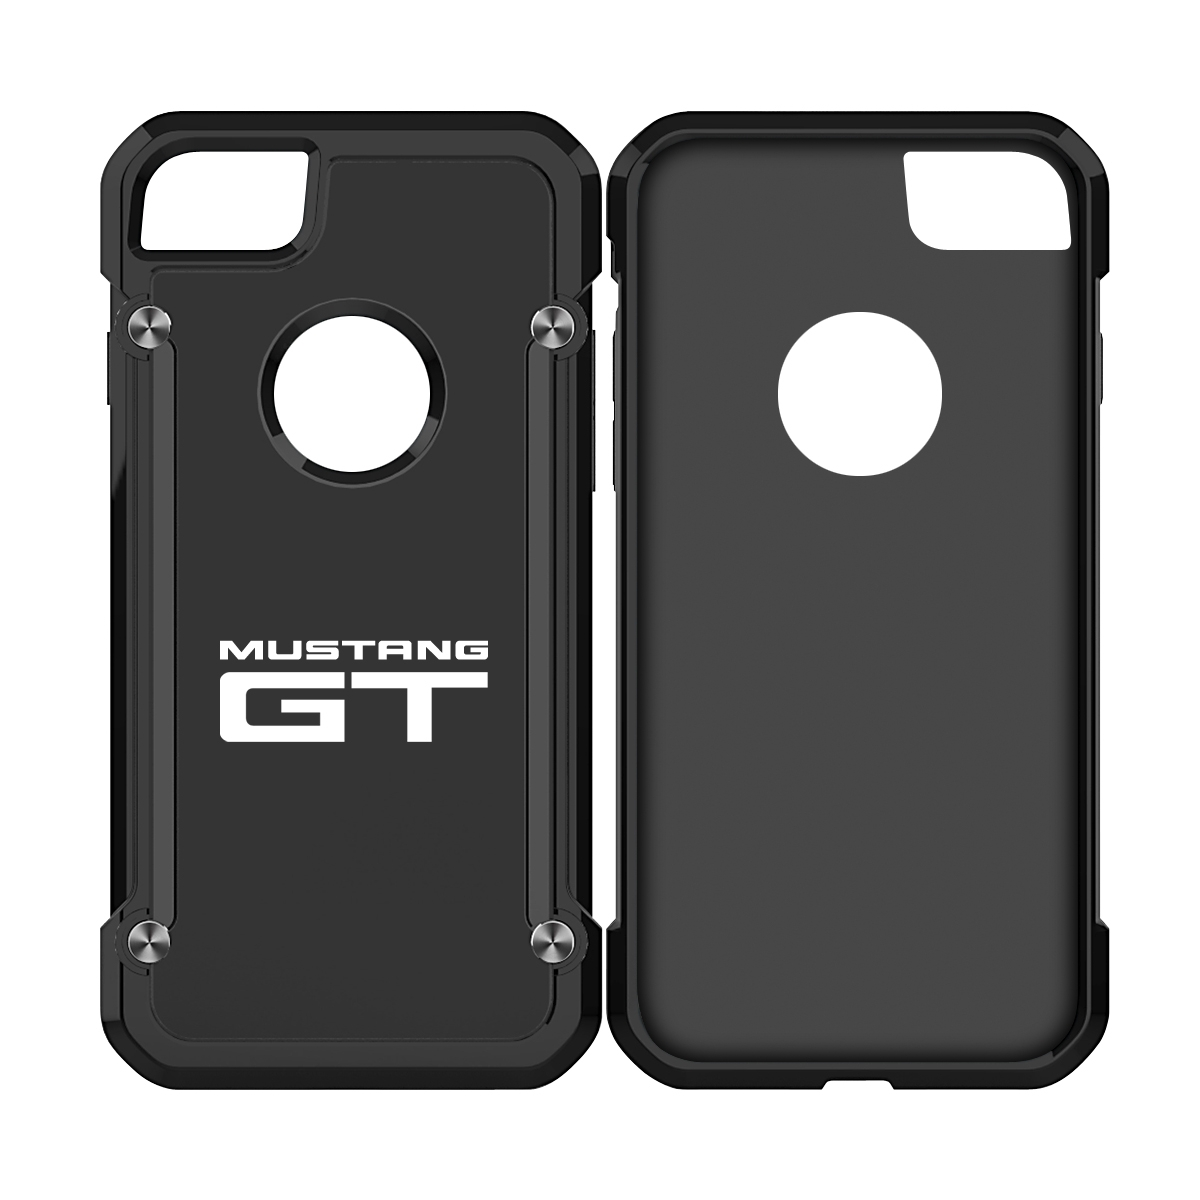 Ford mustang gt iphone 7 iphone 8 tpu shockproof black cell phone case